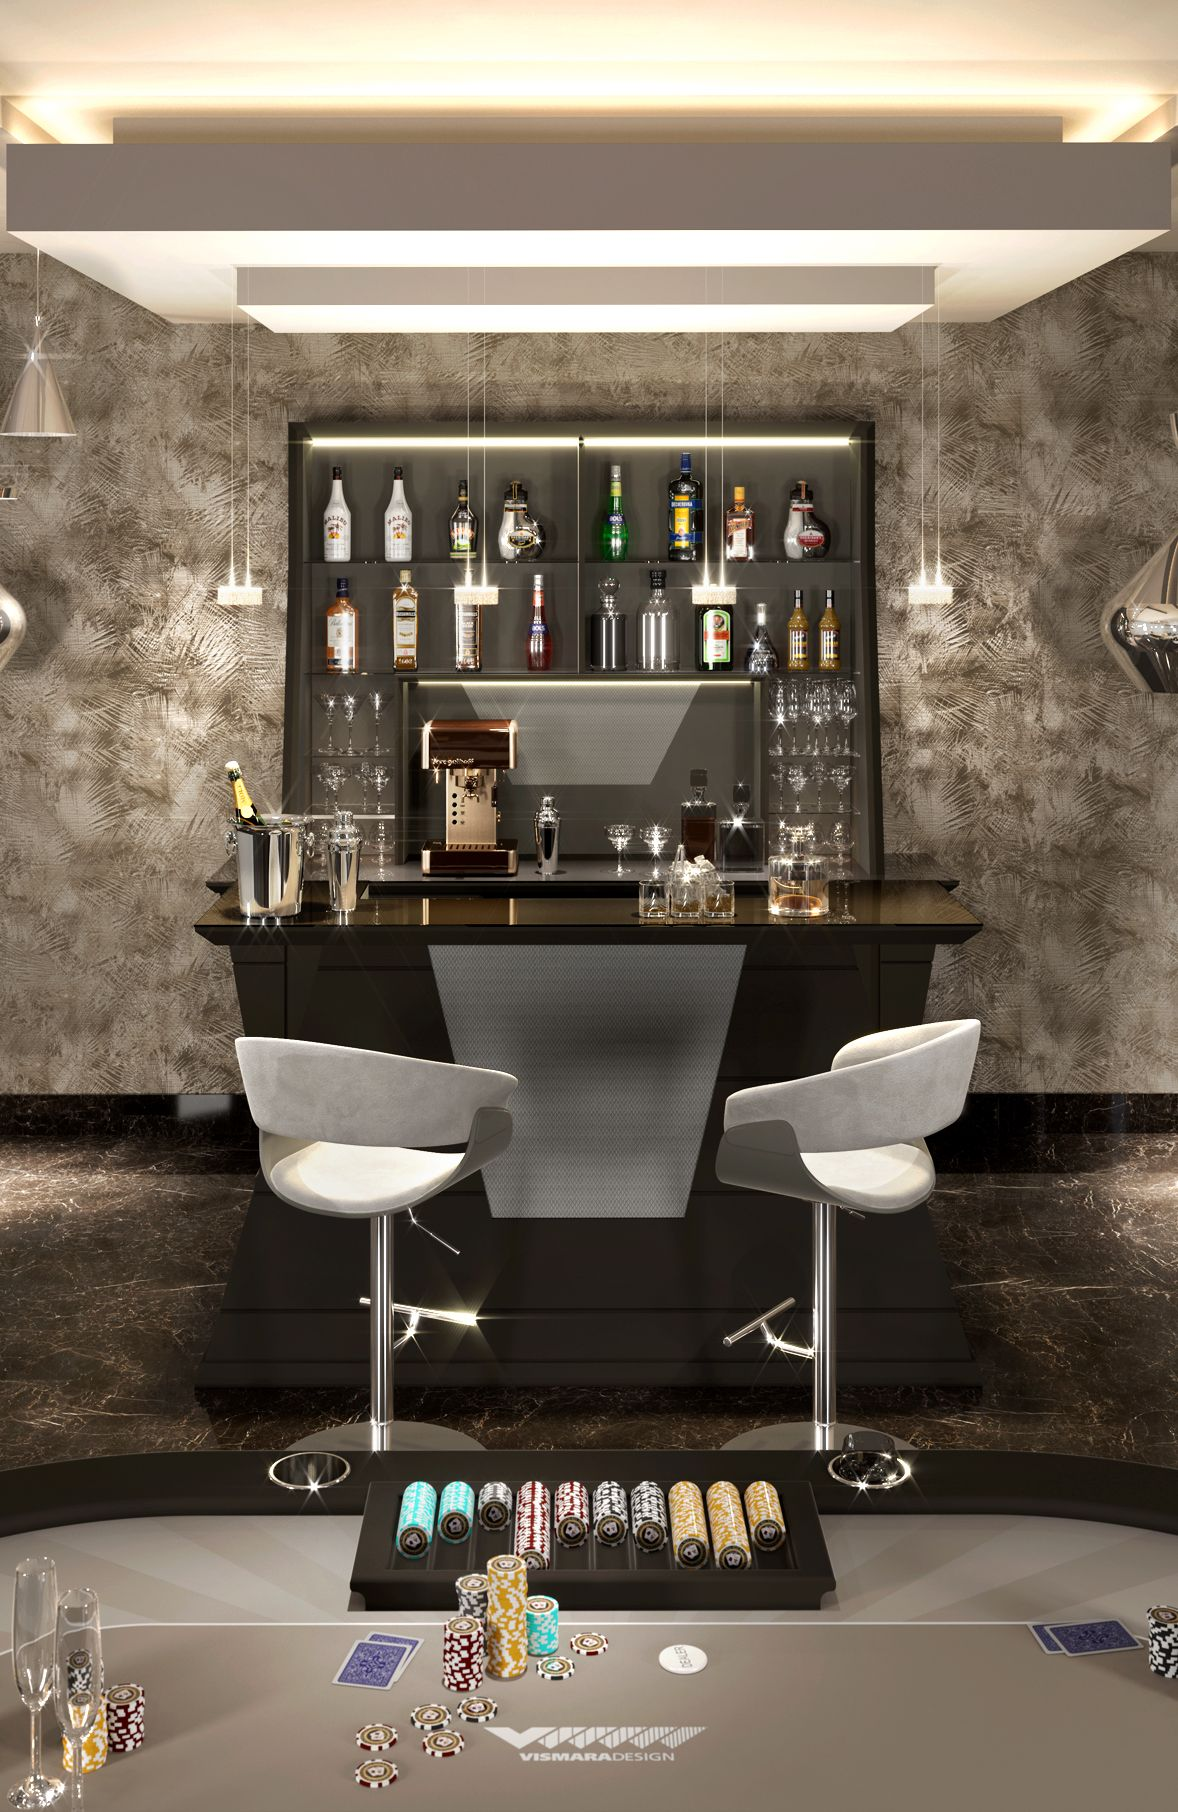 Beau Bar Furniture By Vismara Design, Complete Of All Convenience Like  Professional Wine Cellar, Coffee Machine And Other Usefull Bar Tools.